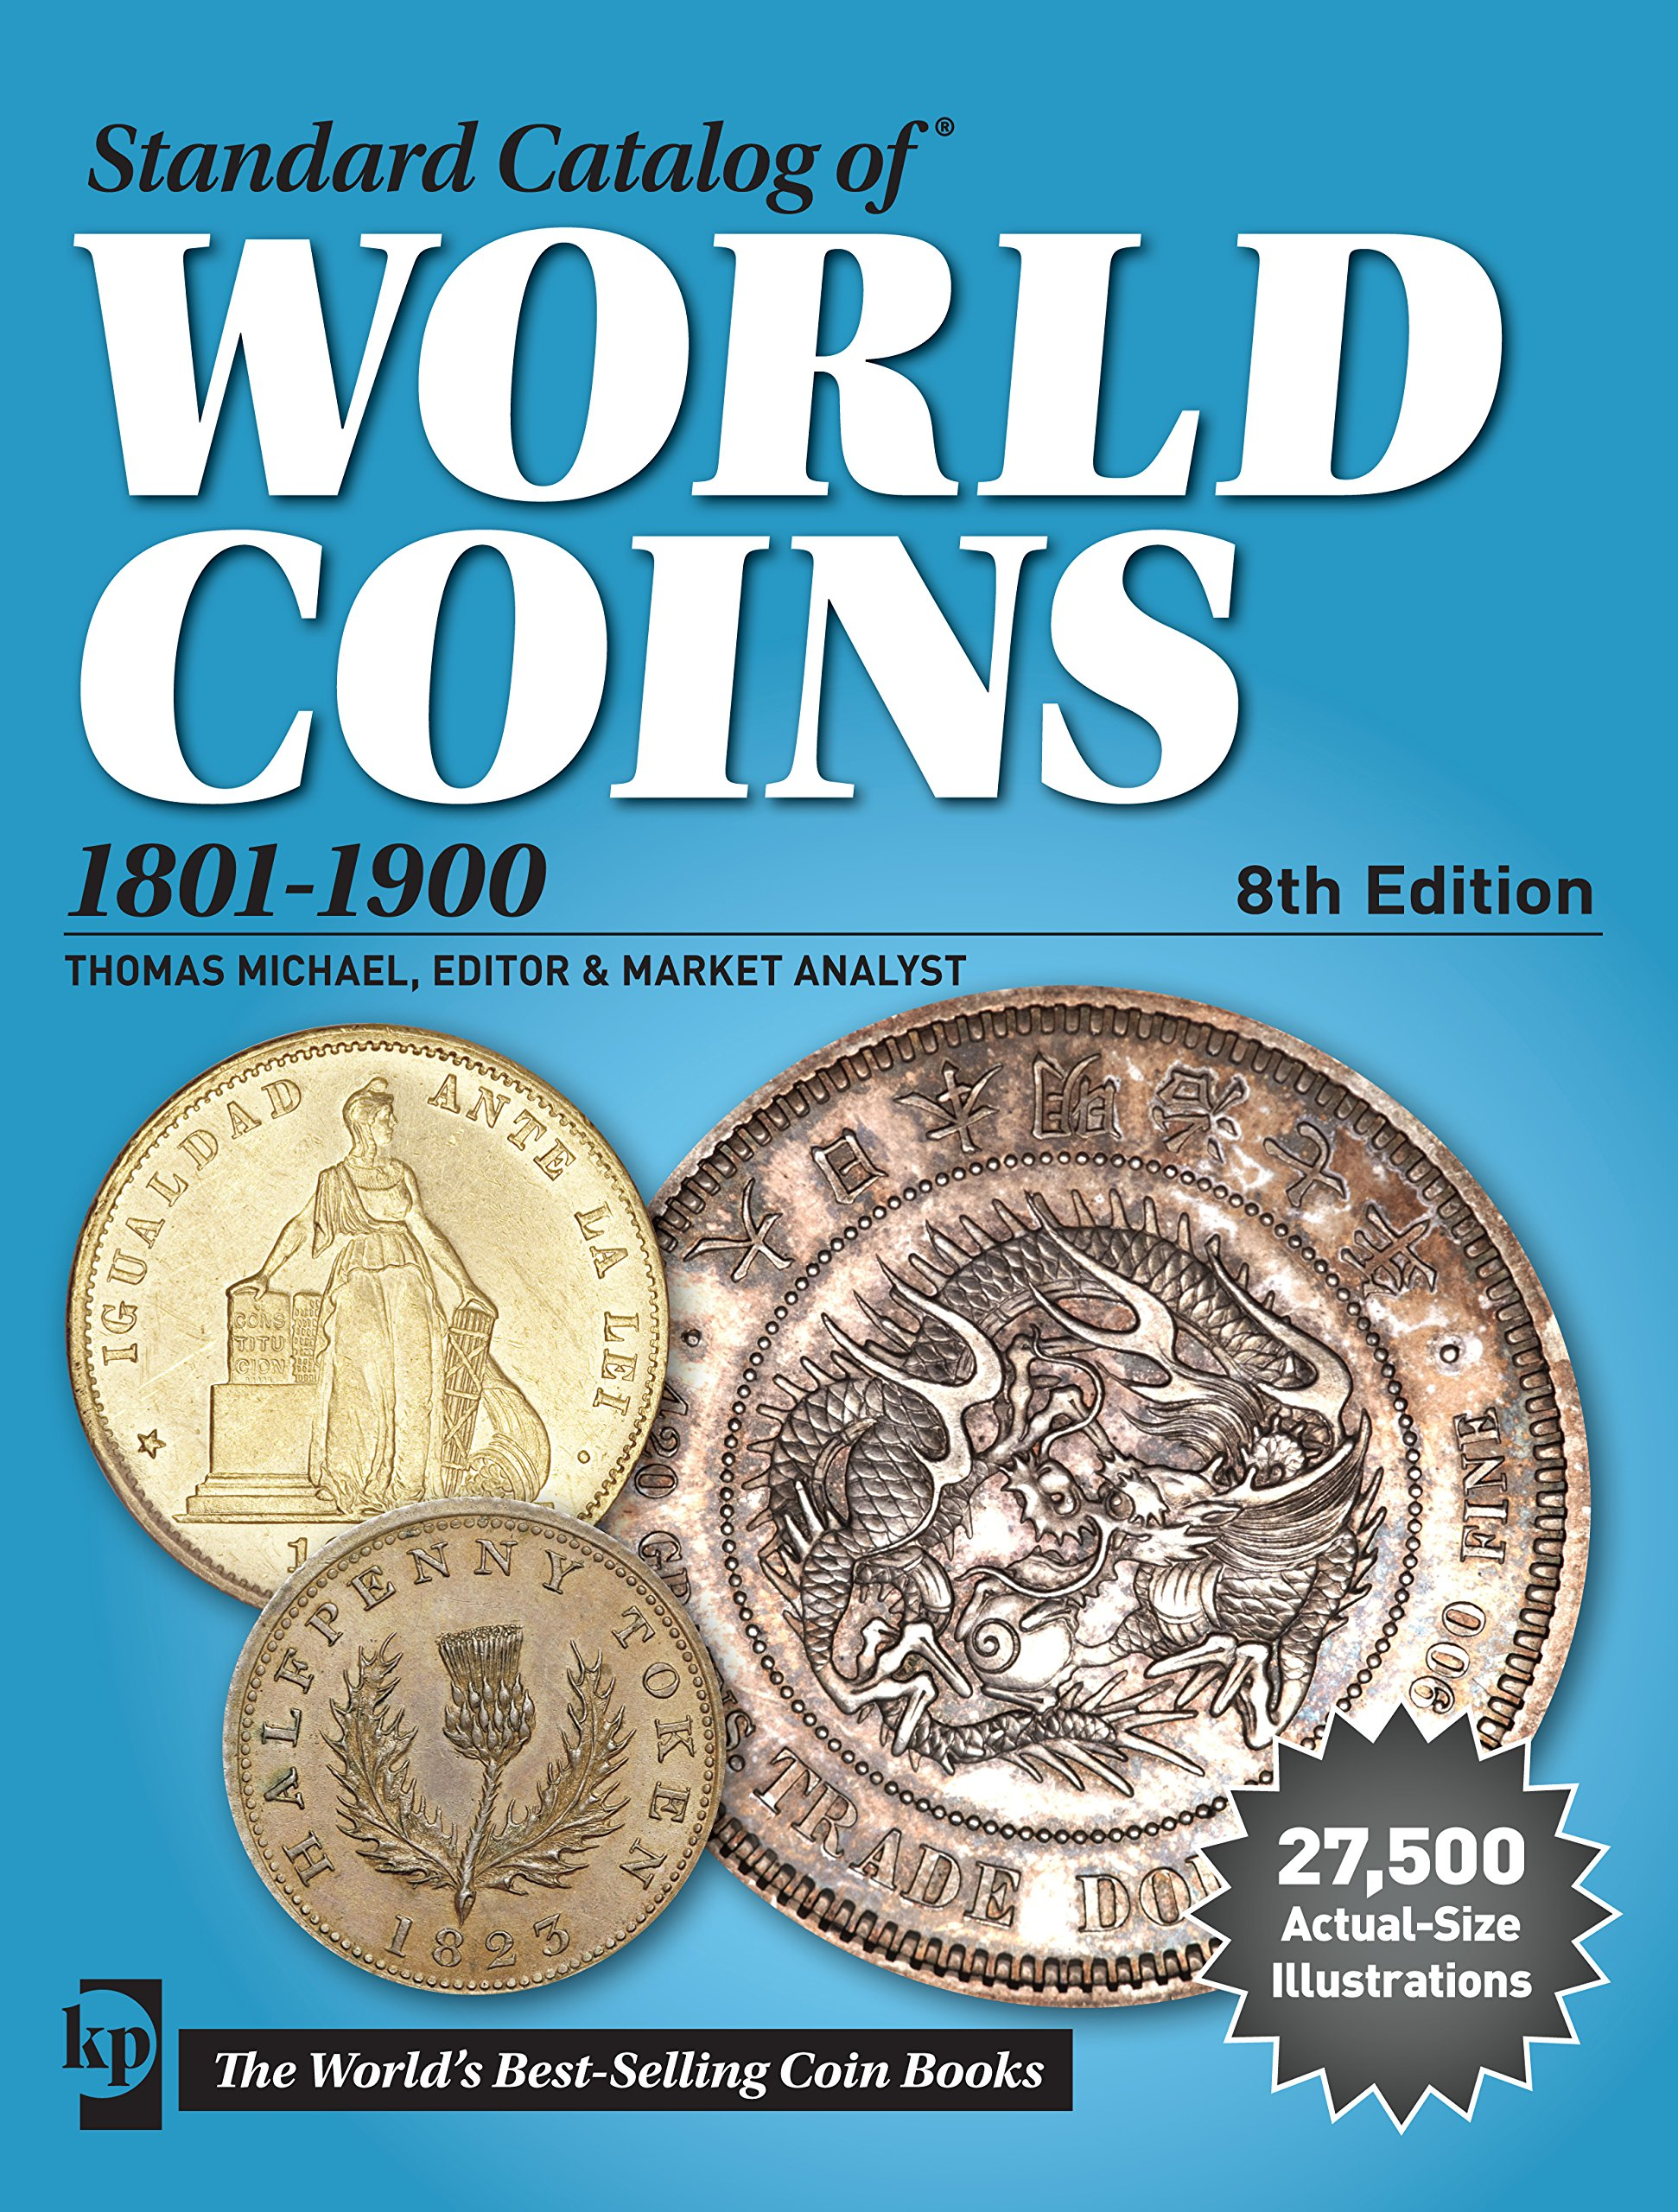 standard-catalog-of-world-coins-1801-1900-standard-catalog-of-world-coins-19th-century-edition-1801-1900